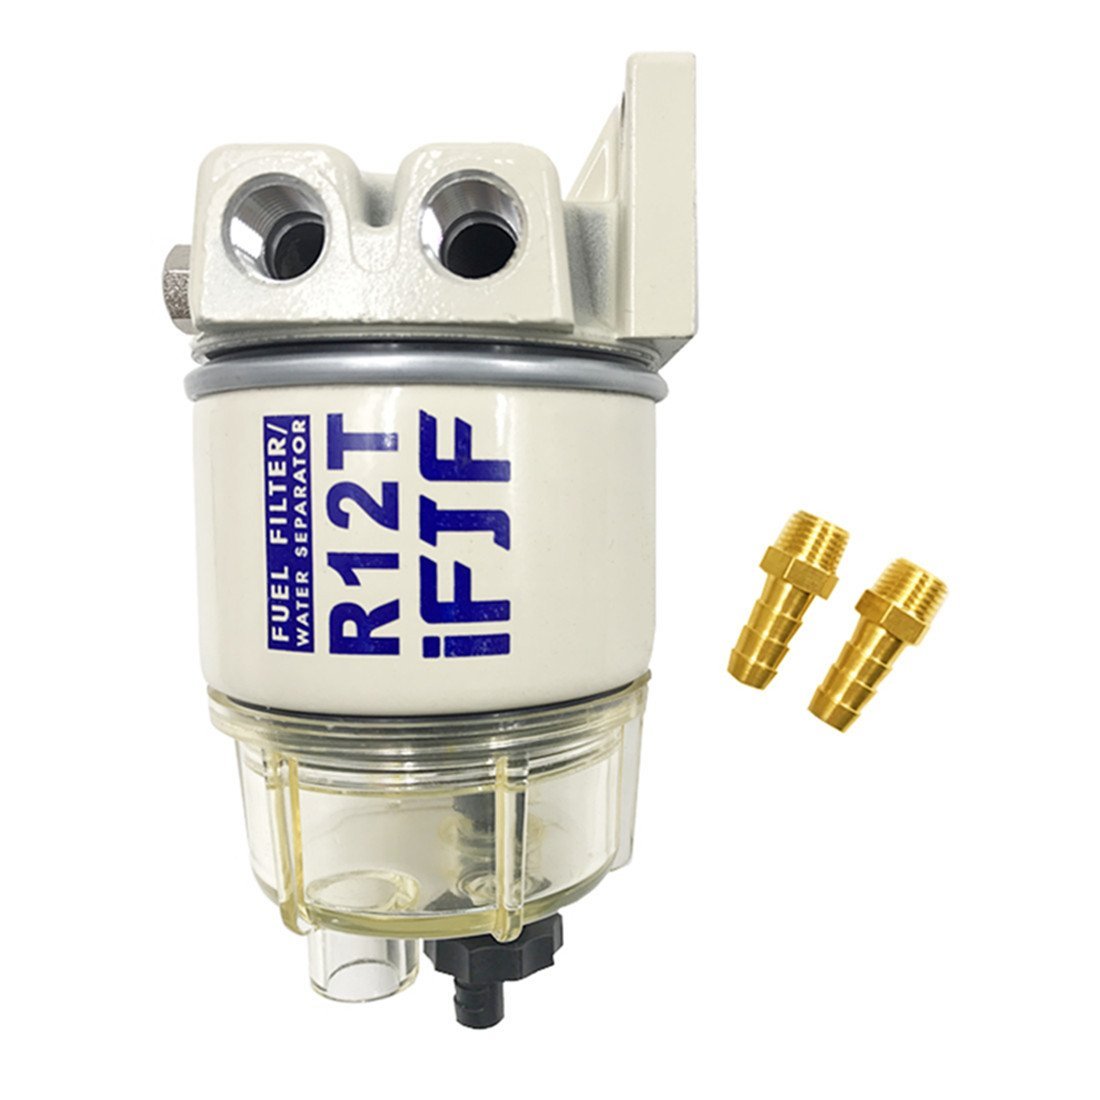 Ifjf R12t Fuel Filter Water Separator 120at Npt Zg1 4 19 Automotive Perkins Filters Parts